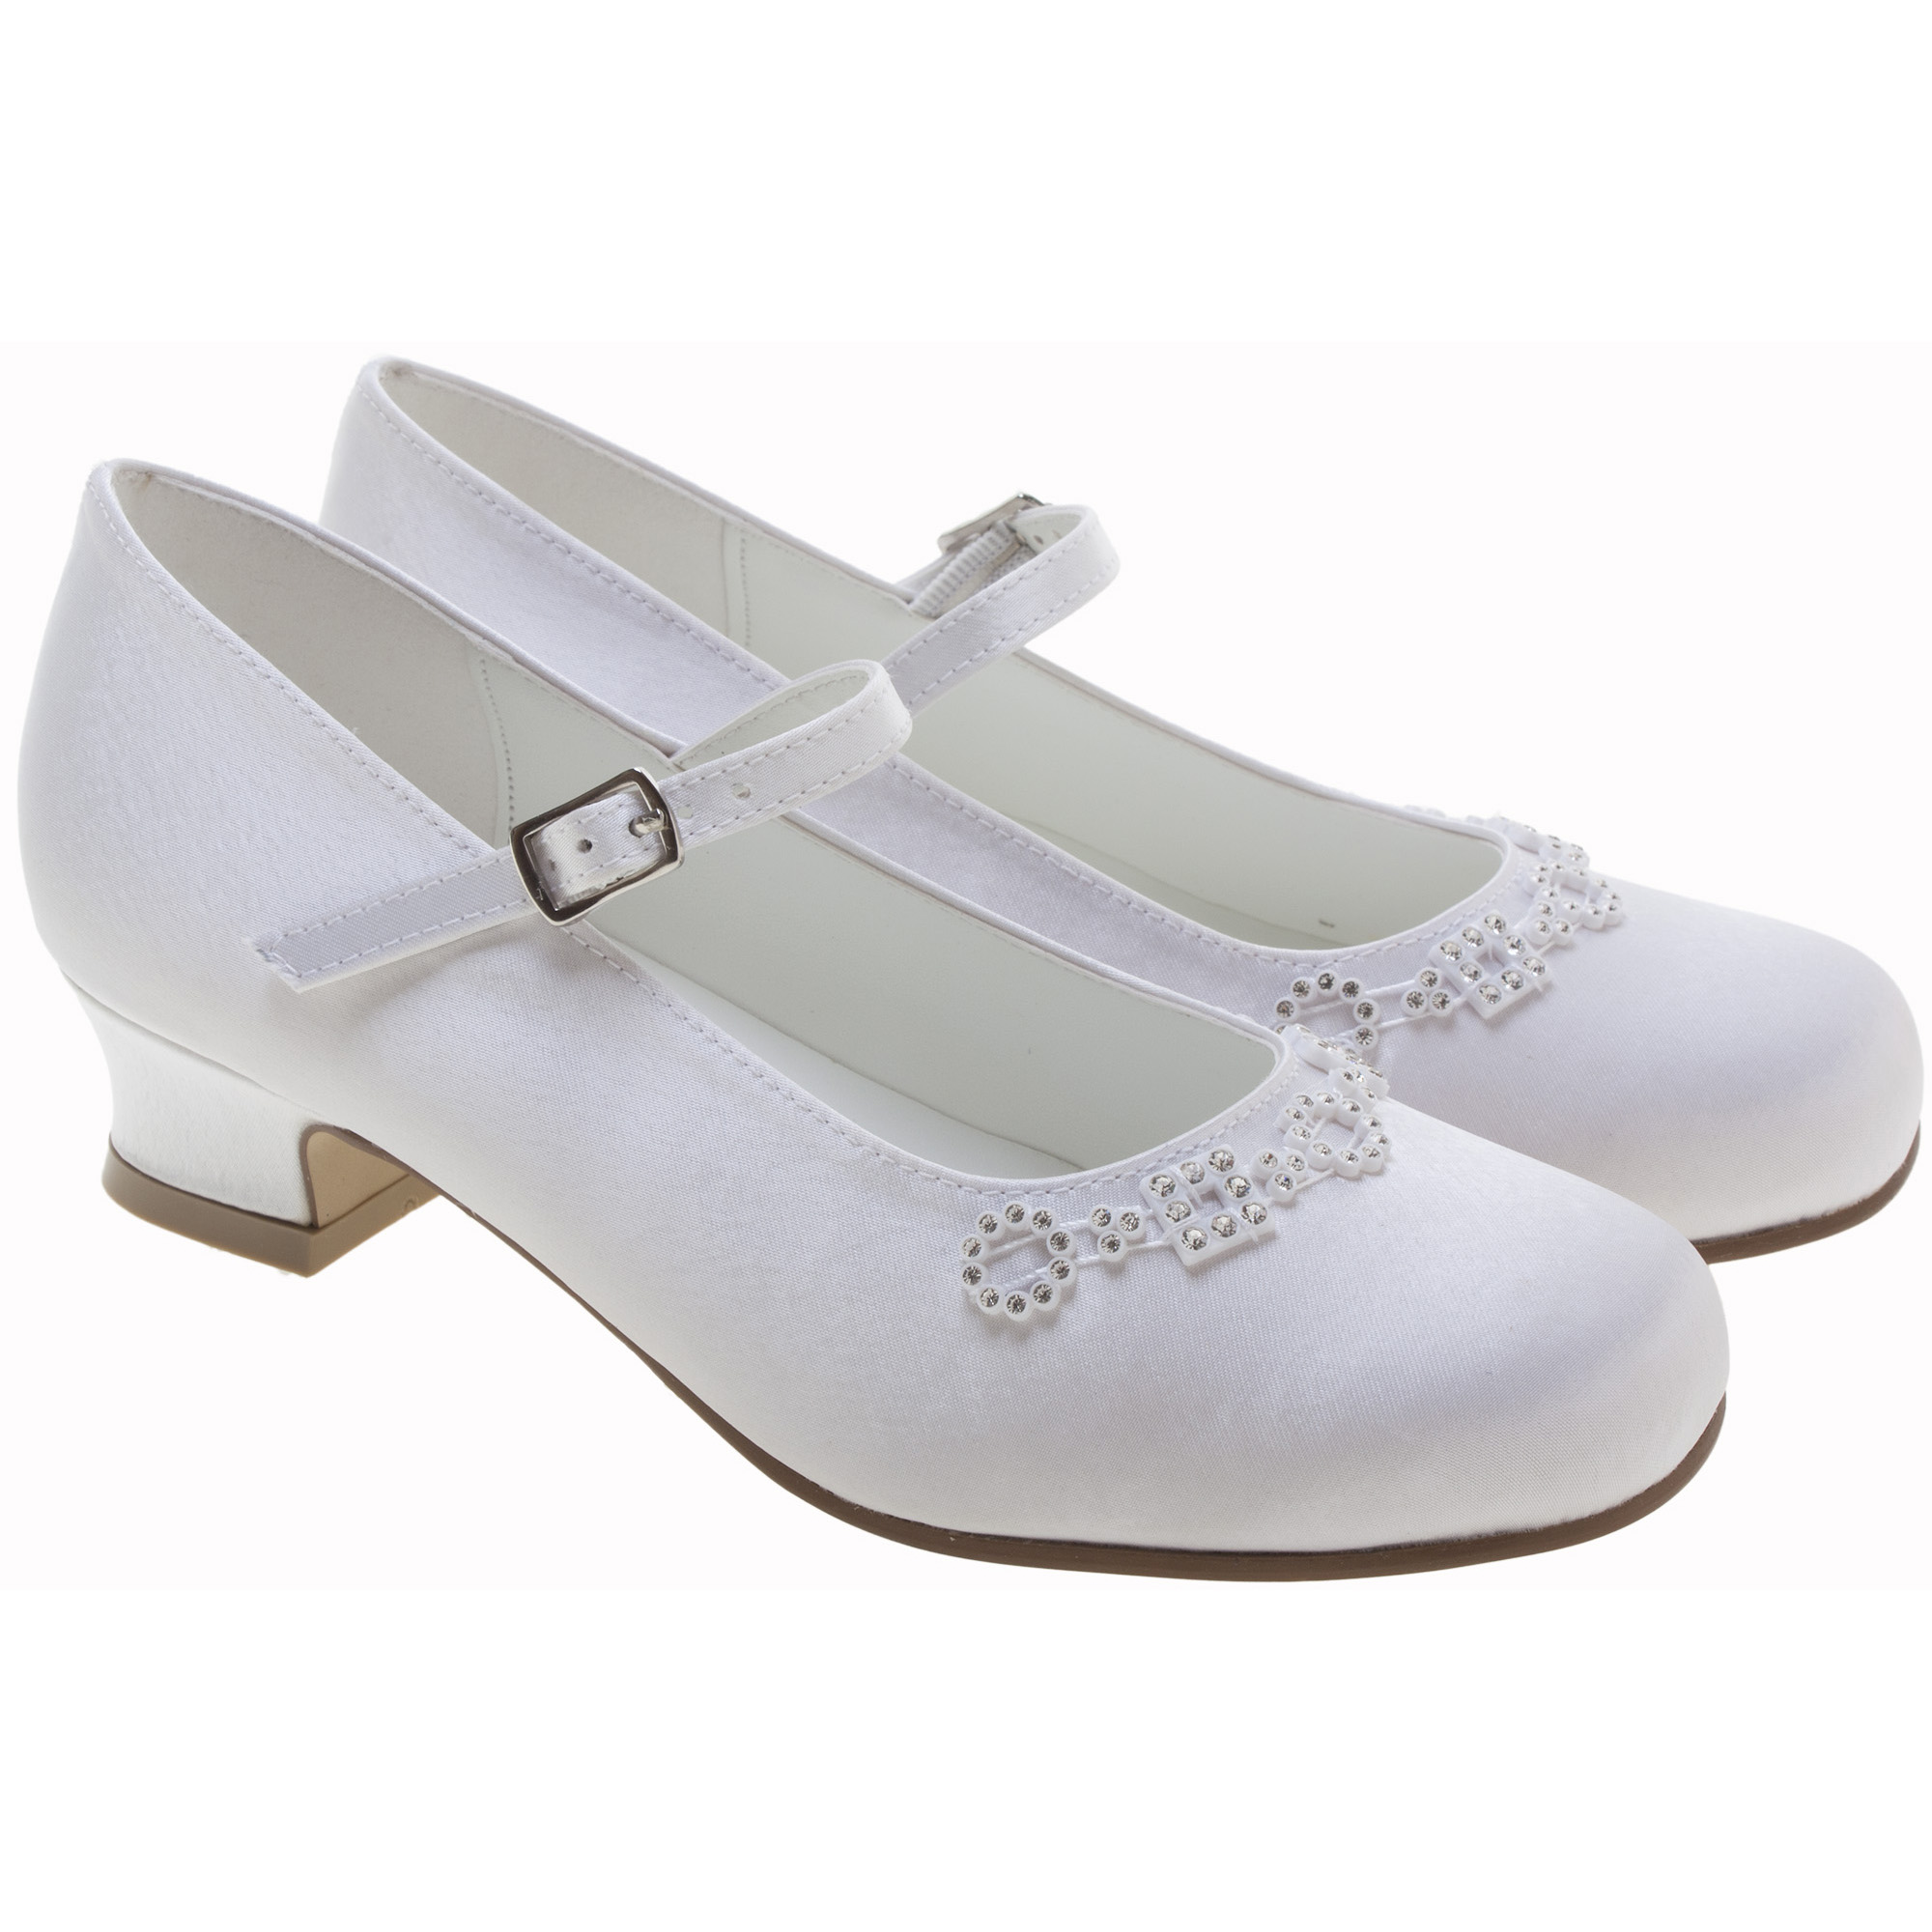 Looking for quality girls' footwear? Matalan have a fantastic range starting at £8 from boots, wedges and ballet shoes. Shop the range here today. Girls Shoes Shop All White (11) Feature Real Leather (9) Coated Leather (8) Price.